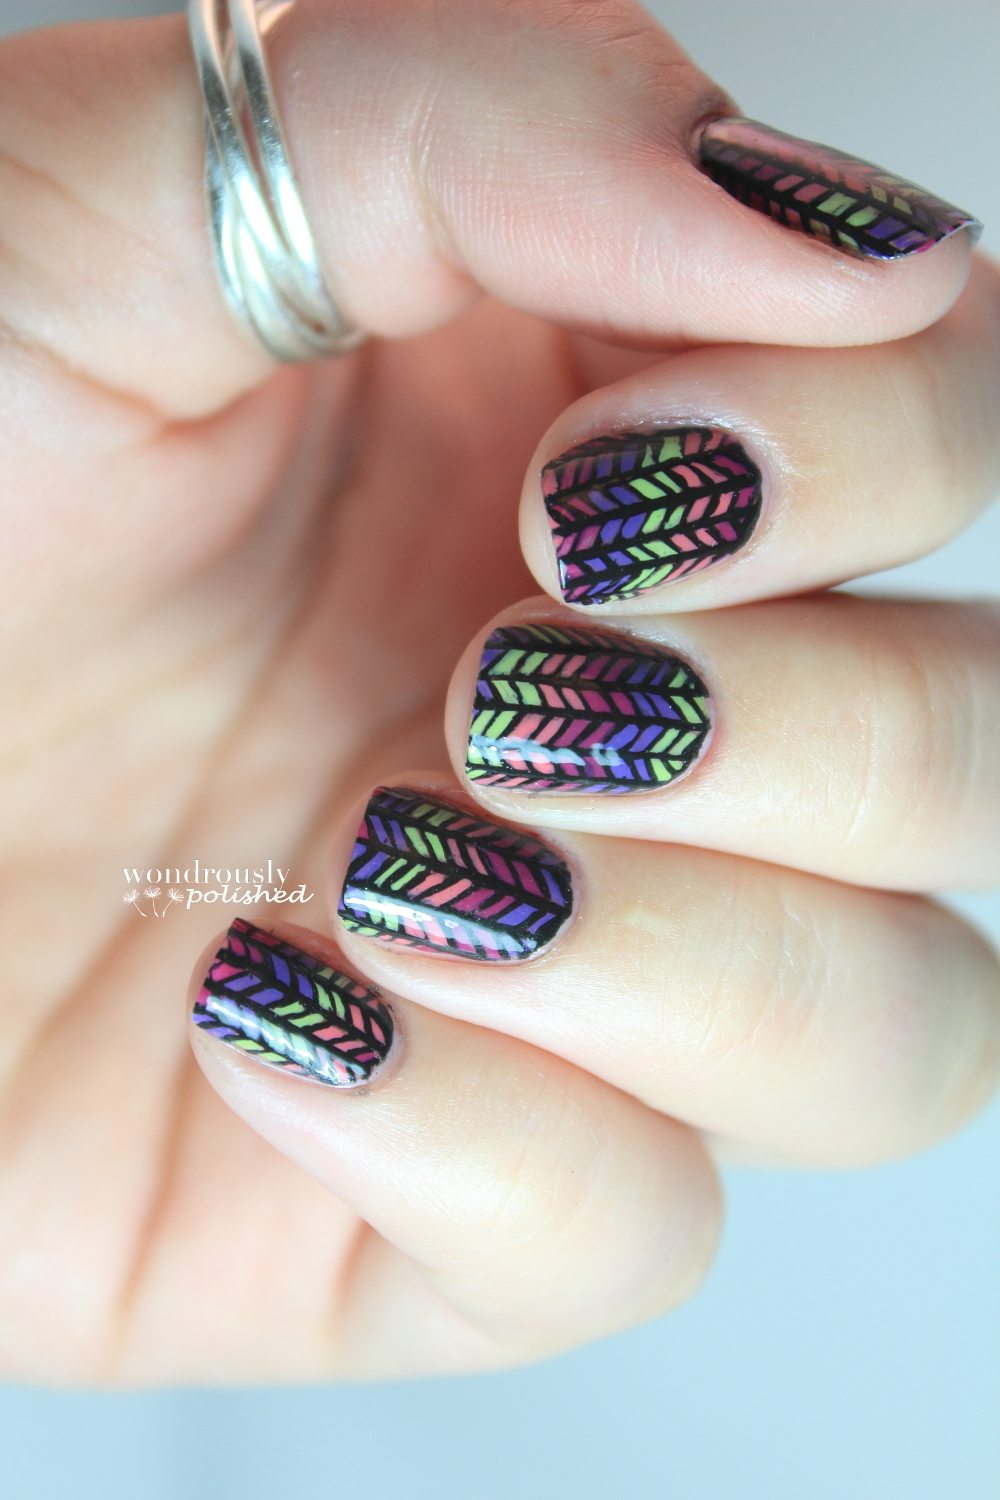 Wondrously Polished February Nail Art Challenge: Guest Post: Lindsey From Wondrously Polished